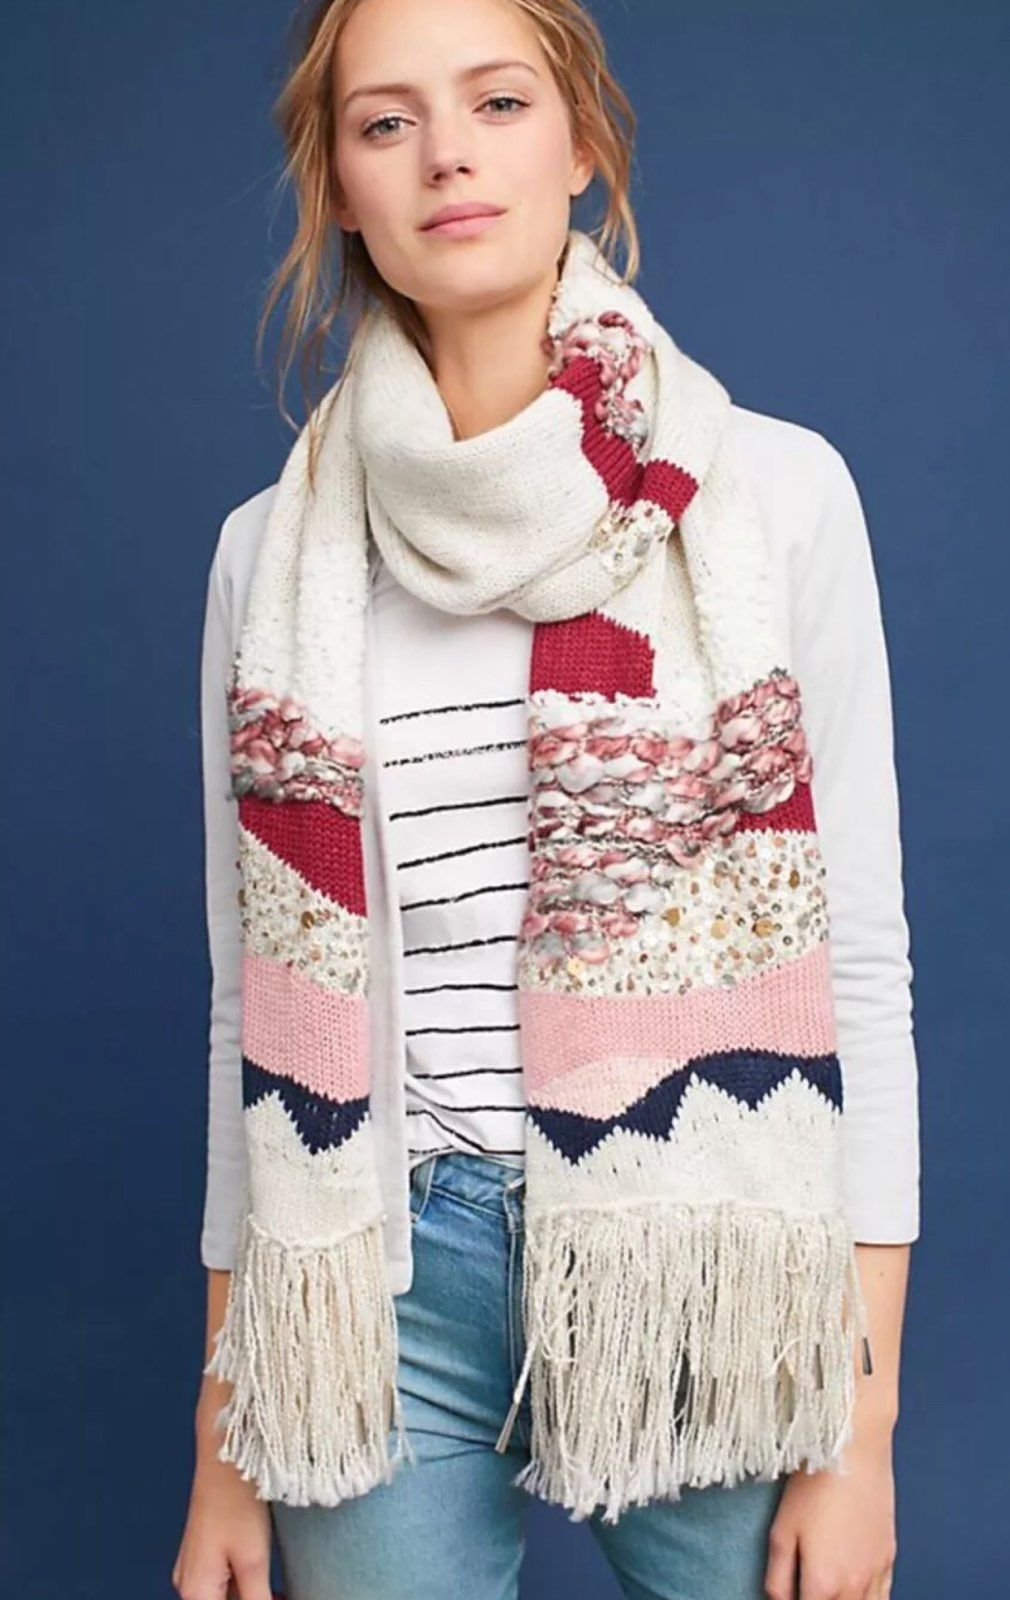 Anthropologie Sequined Blanket Scarf New Mercari The